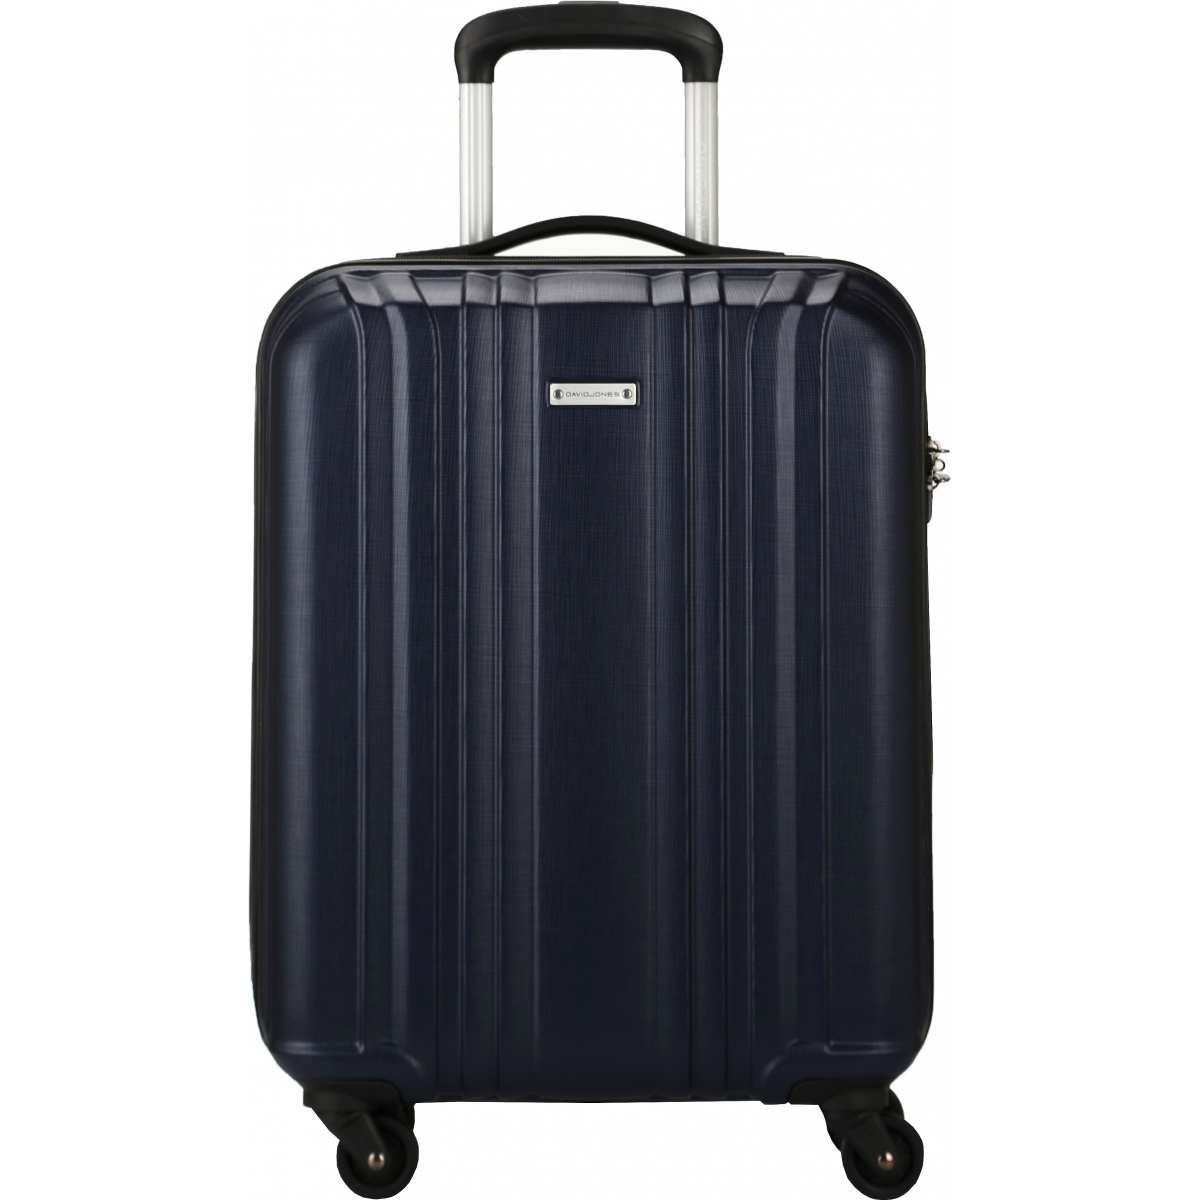 valise cabine rigide david jones 55cm ba10171p couleur principale blue promotion. Black Bedroom Furniture Sets. Home Design Ideas